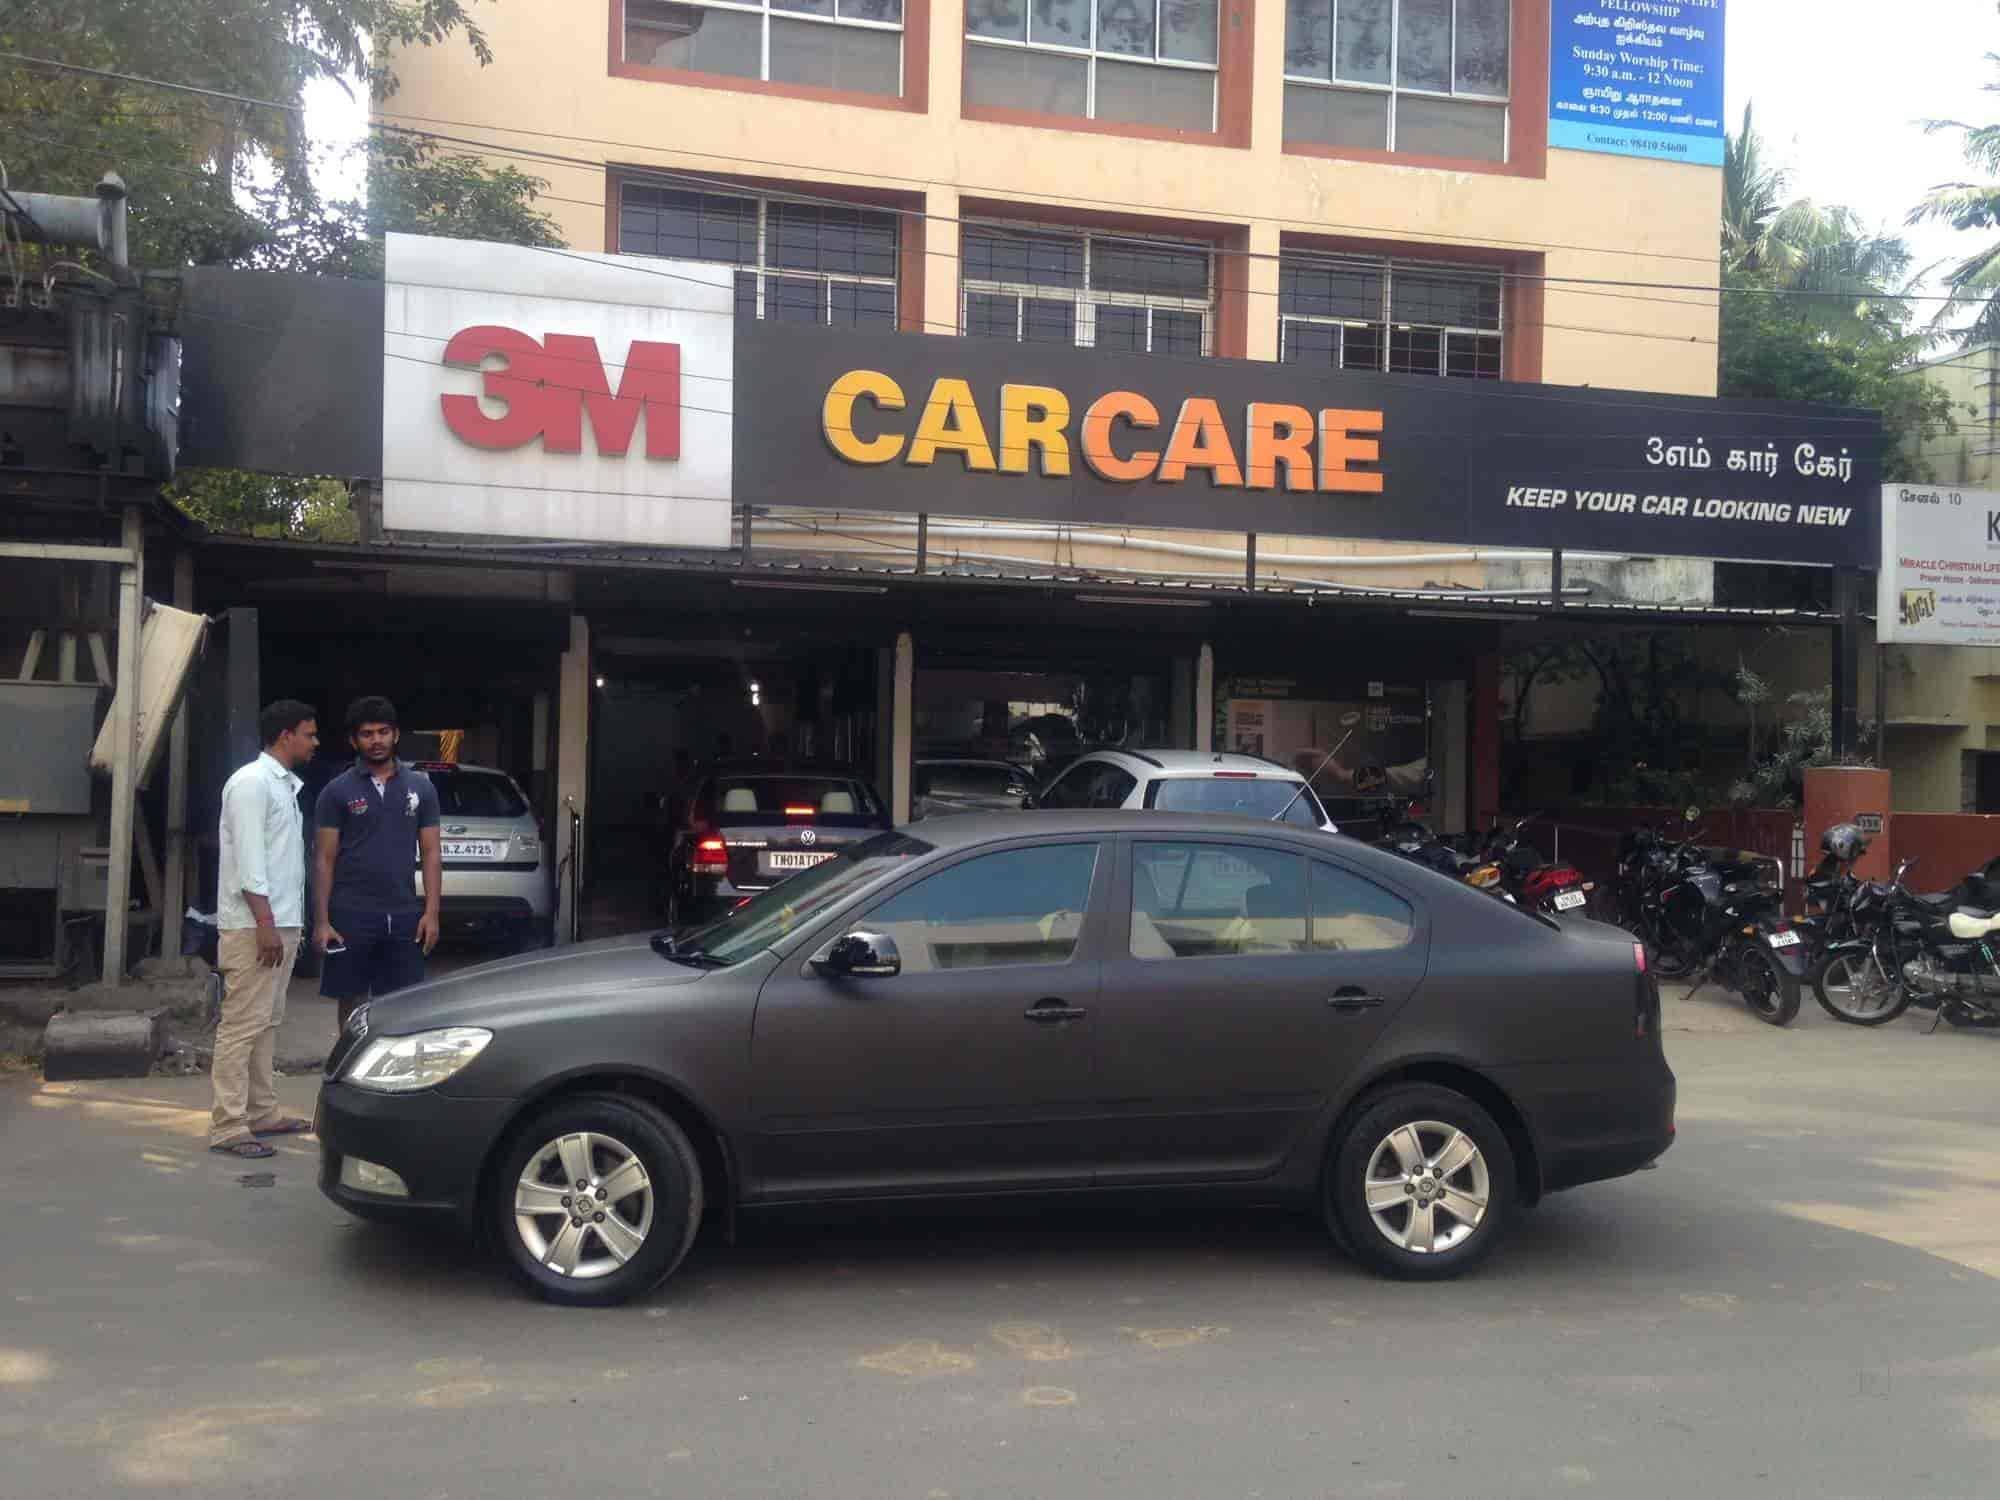 3m Car Care Anna Nagar Car Washing Services In Chennai Justdial